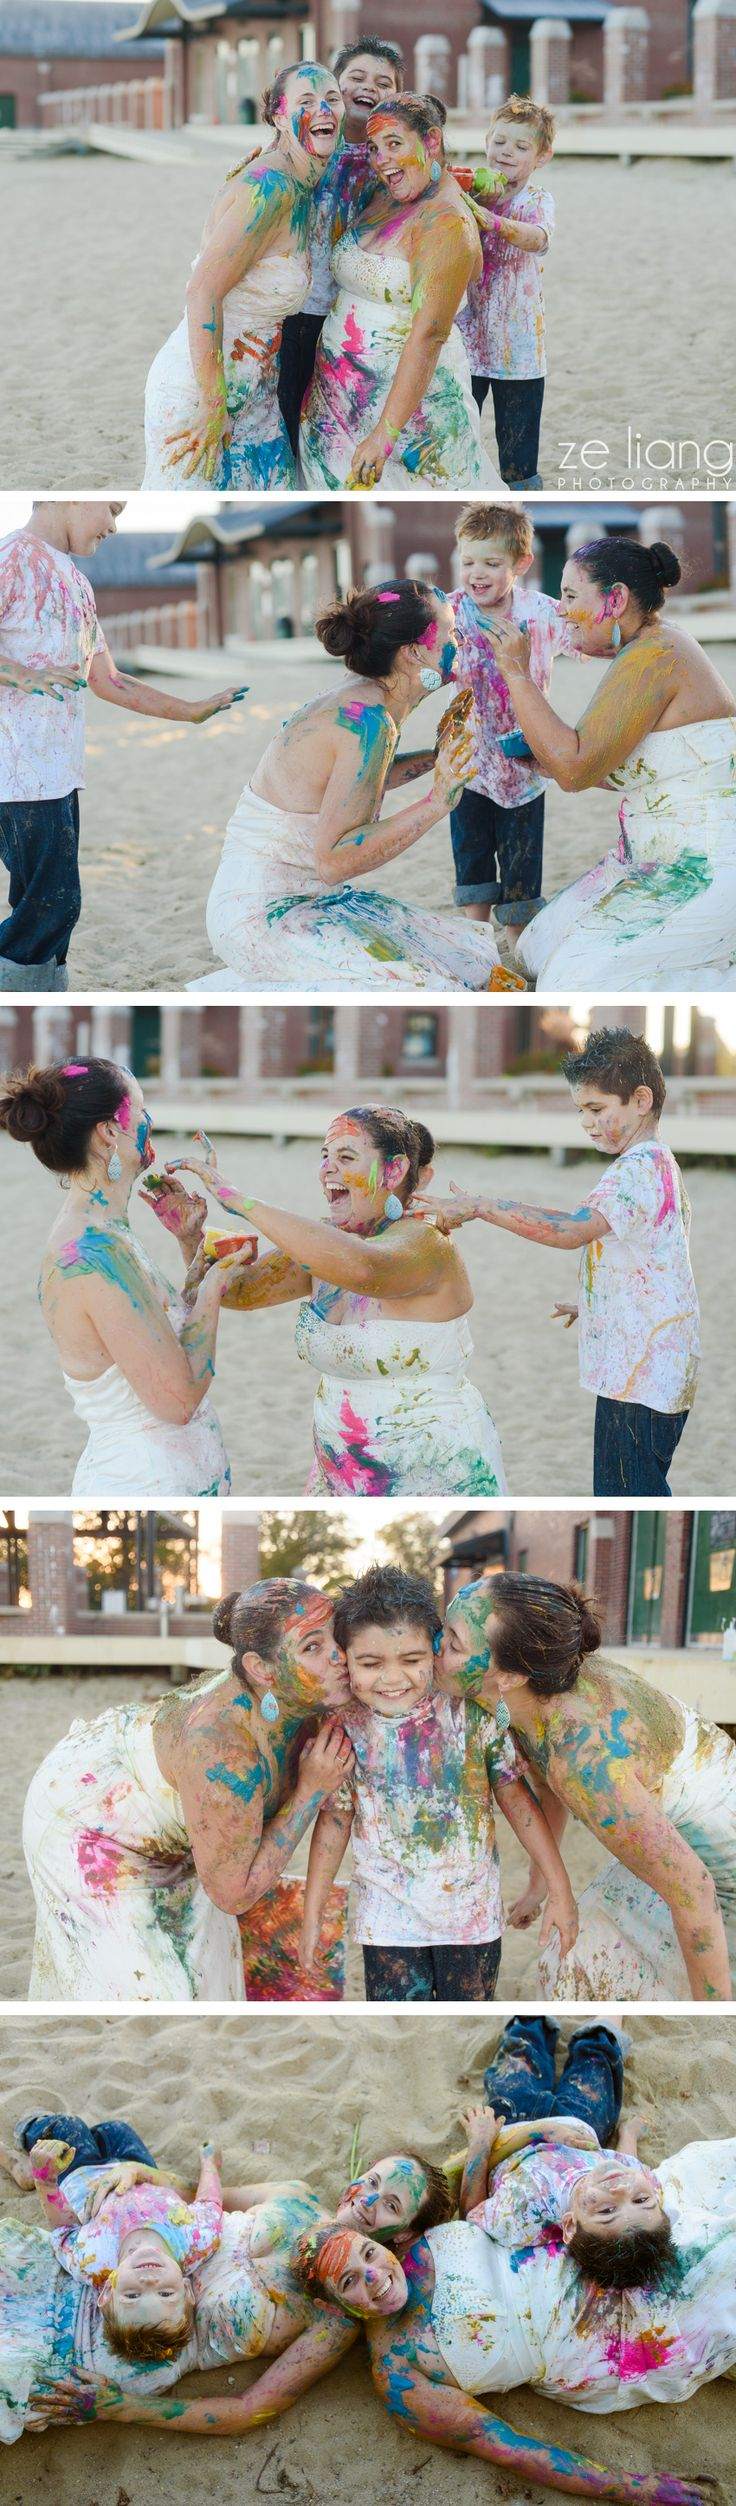 gay wedding paint war trash the dress + family session on the beach #cute #lesbian #colorful #samesex #lgbt